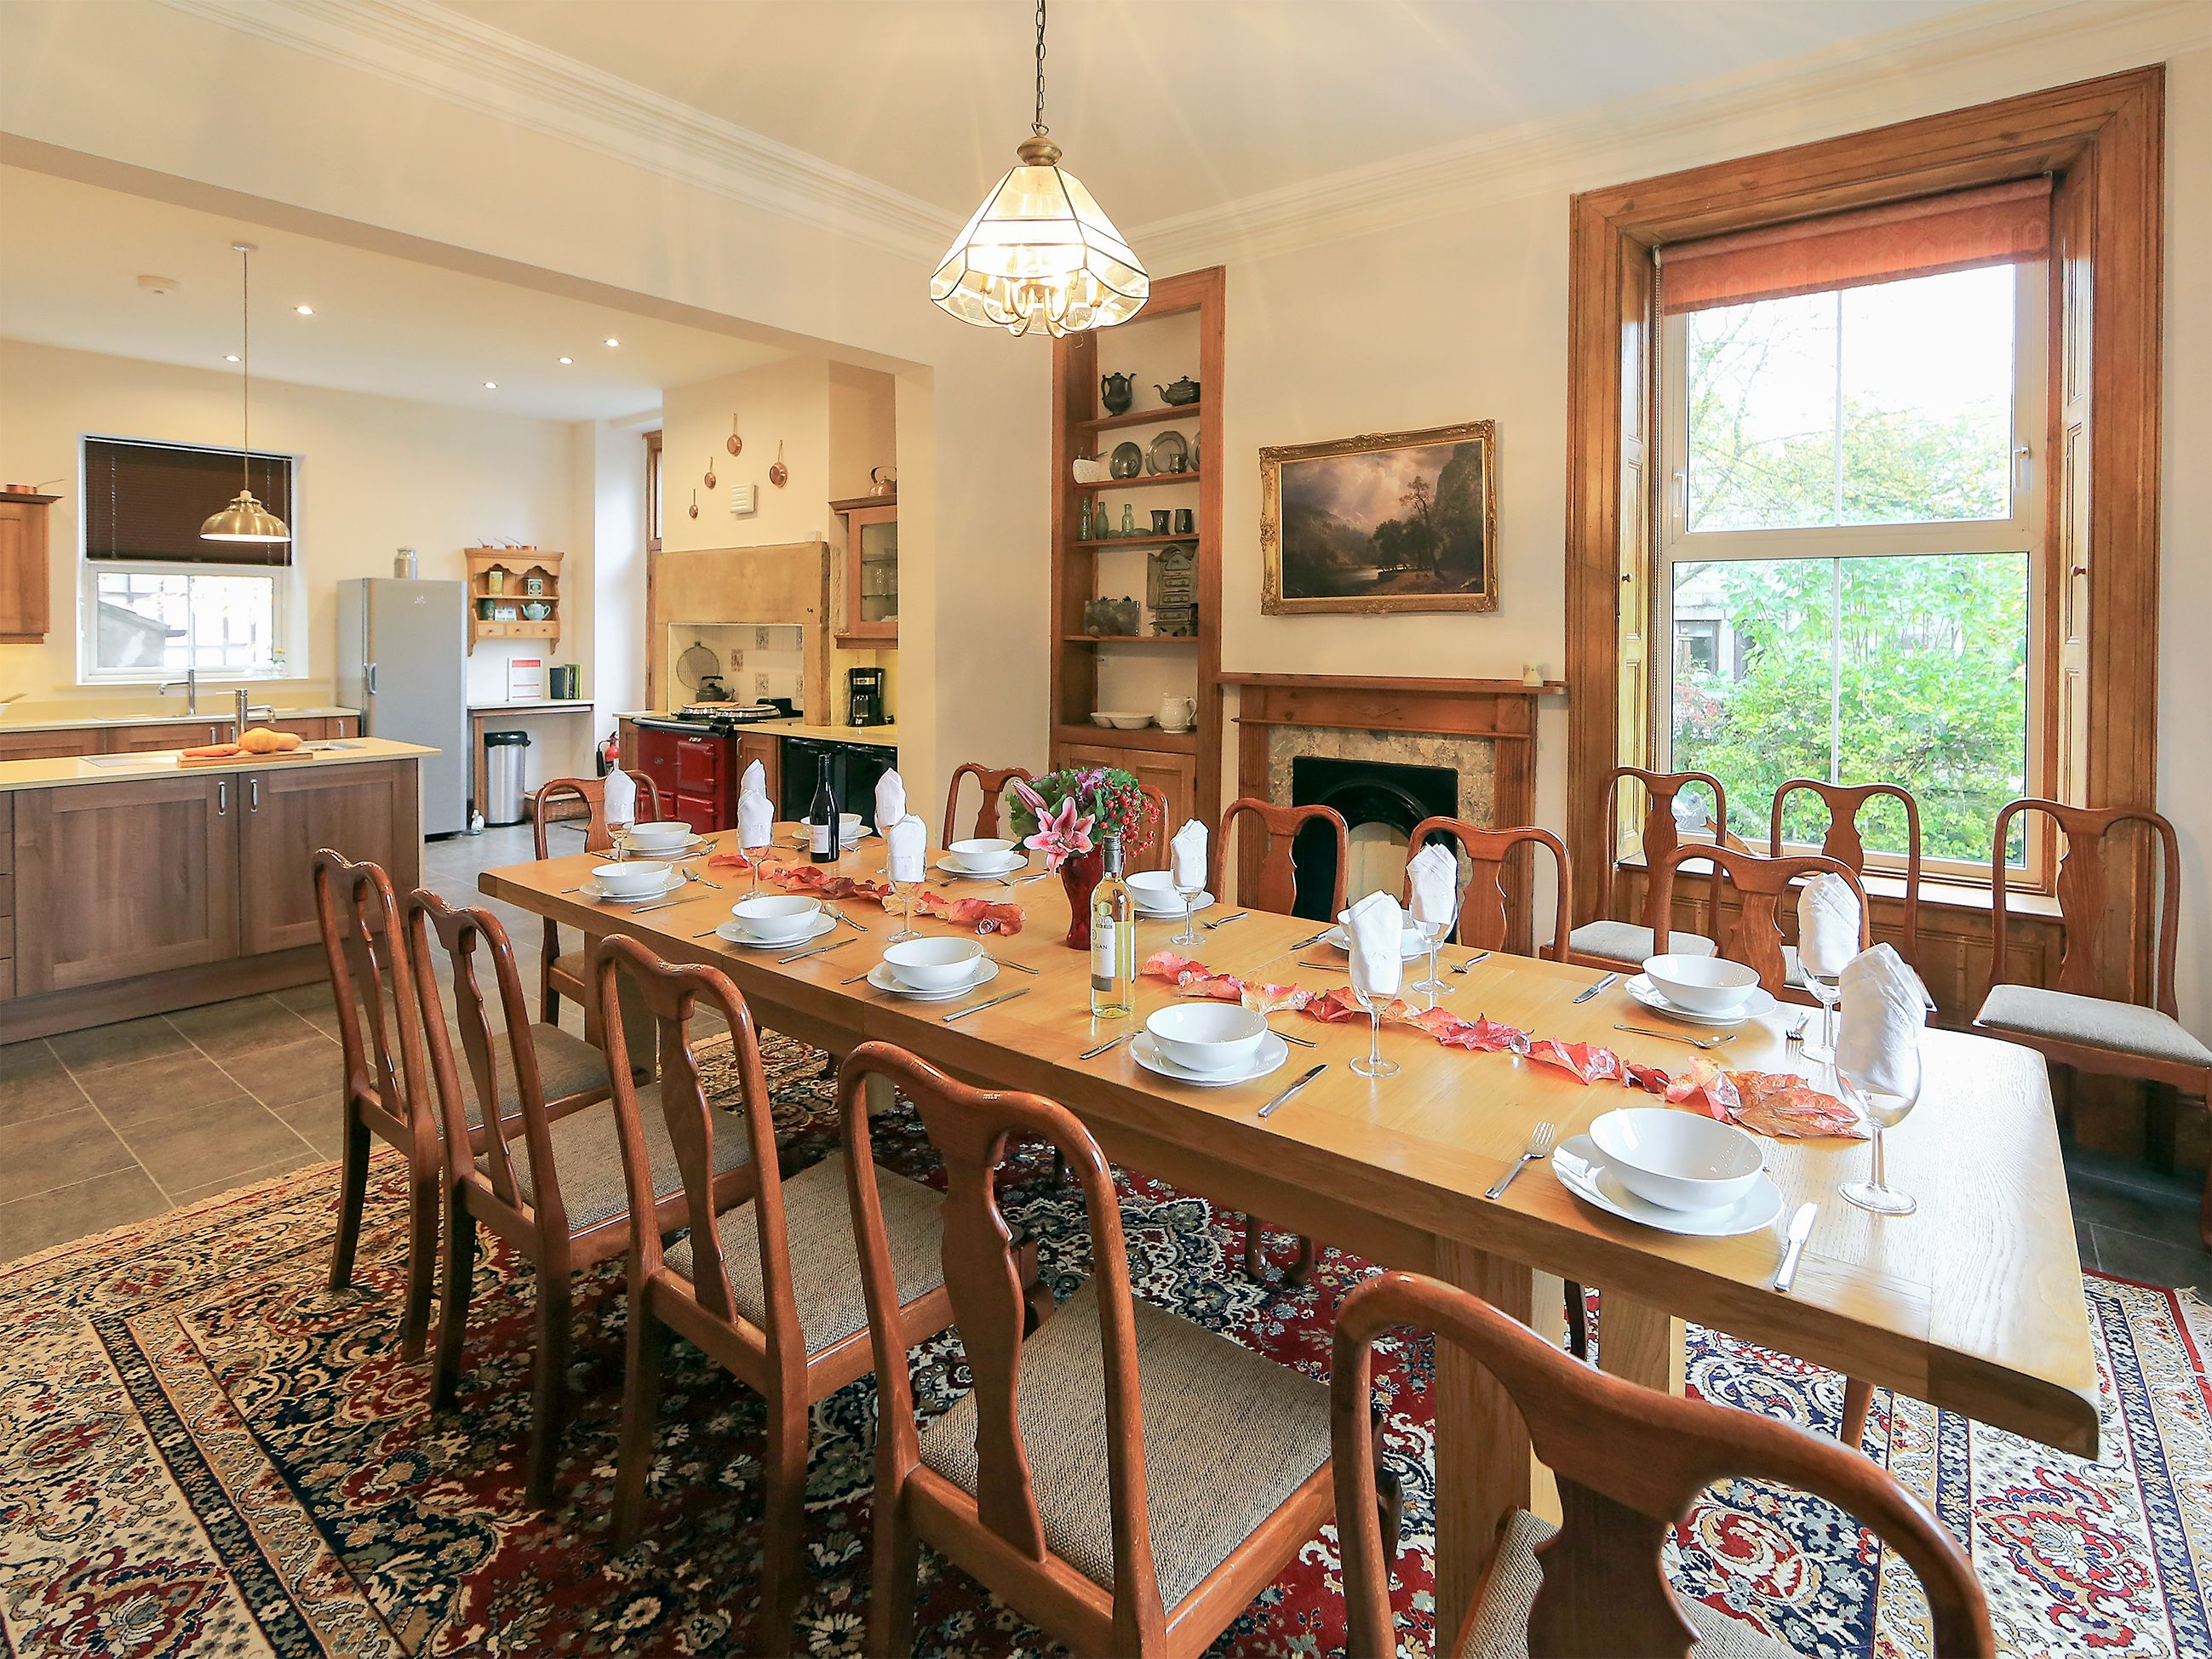 The Agaequipped kitchen boasts a fantastic, roomy social